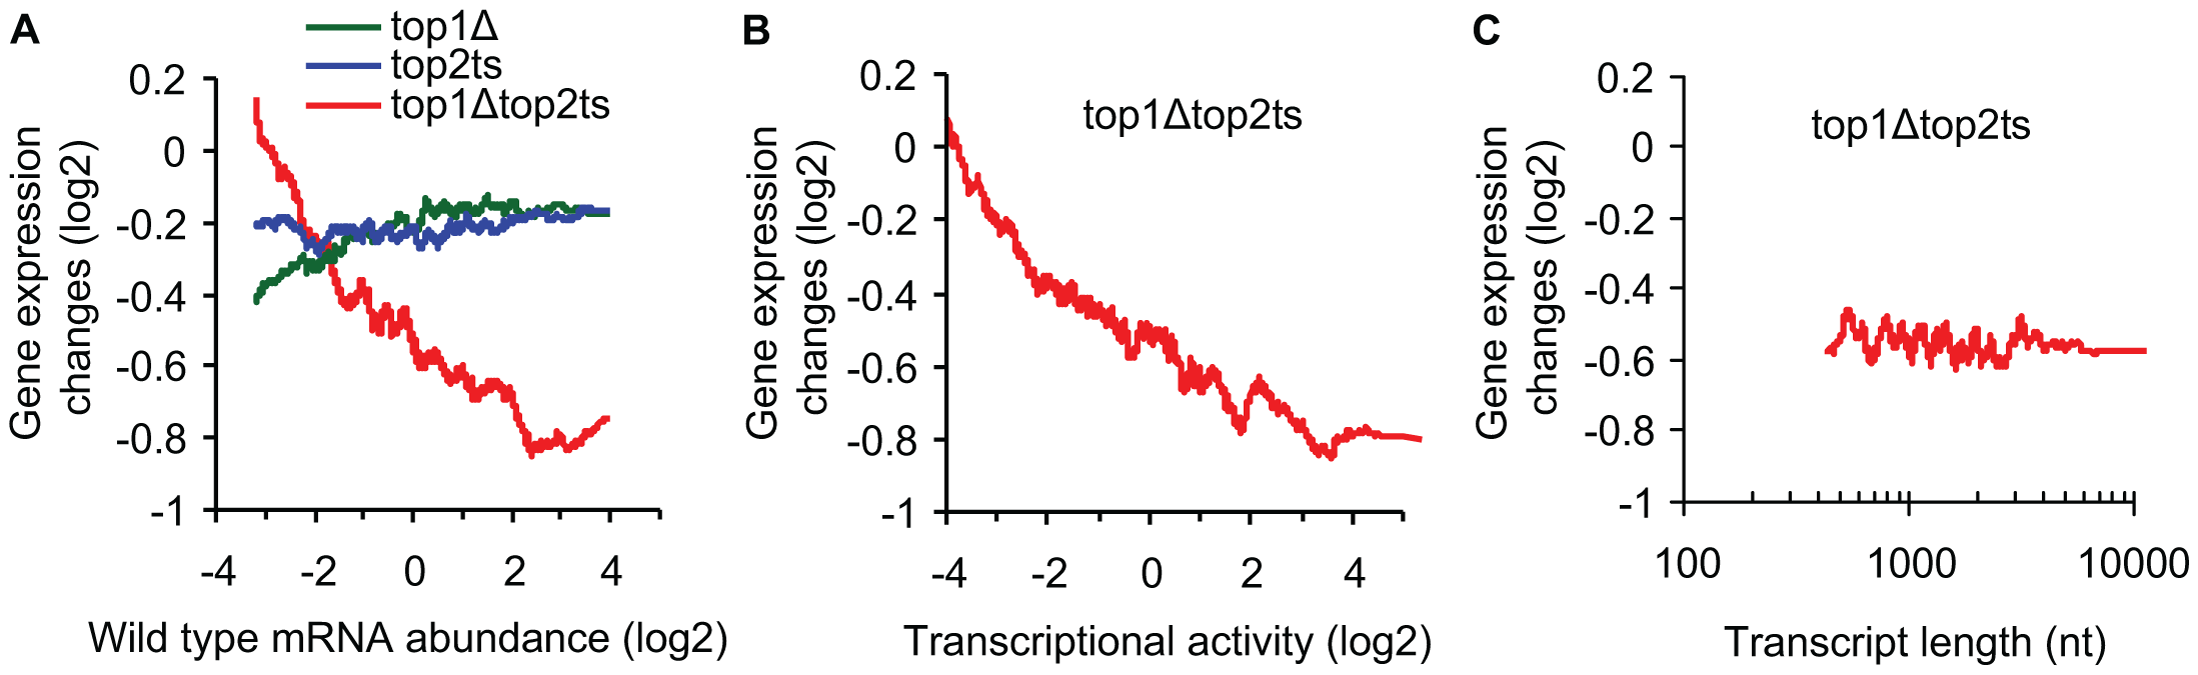 Transcriptional activity and not transcript length reflects topoisomerase dependency.